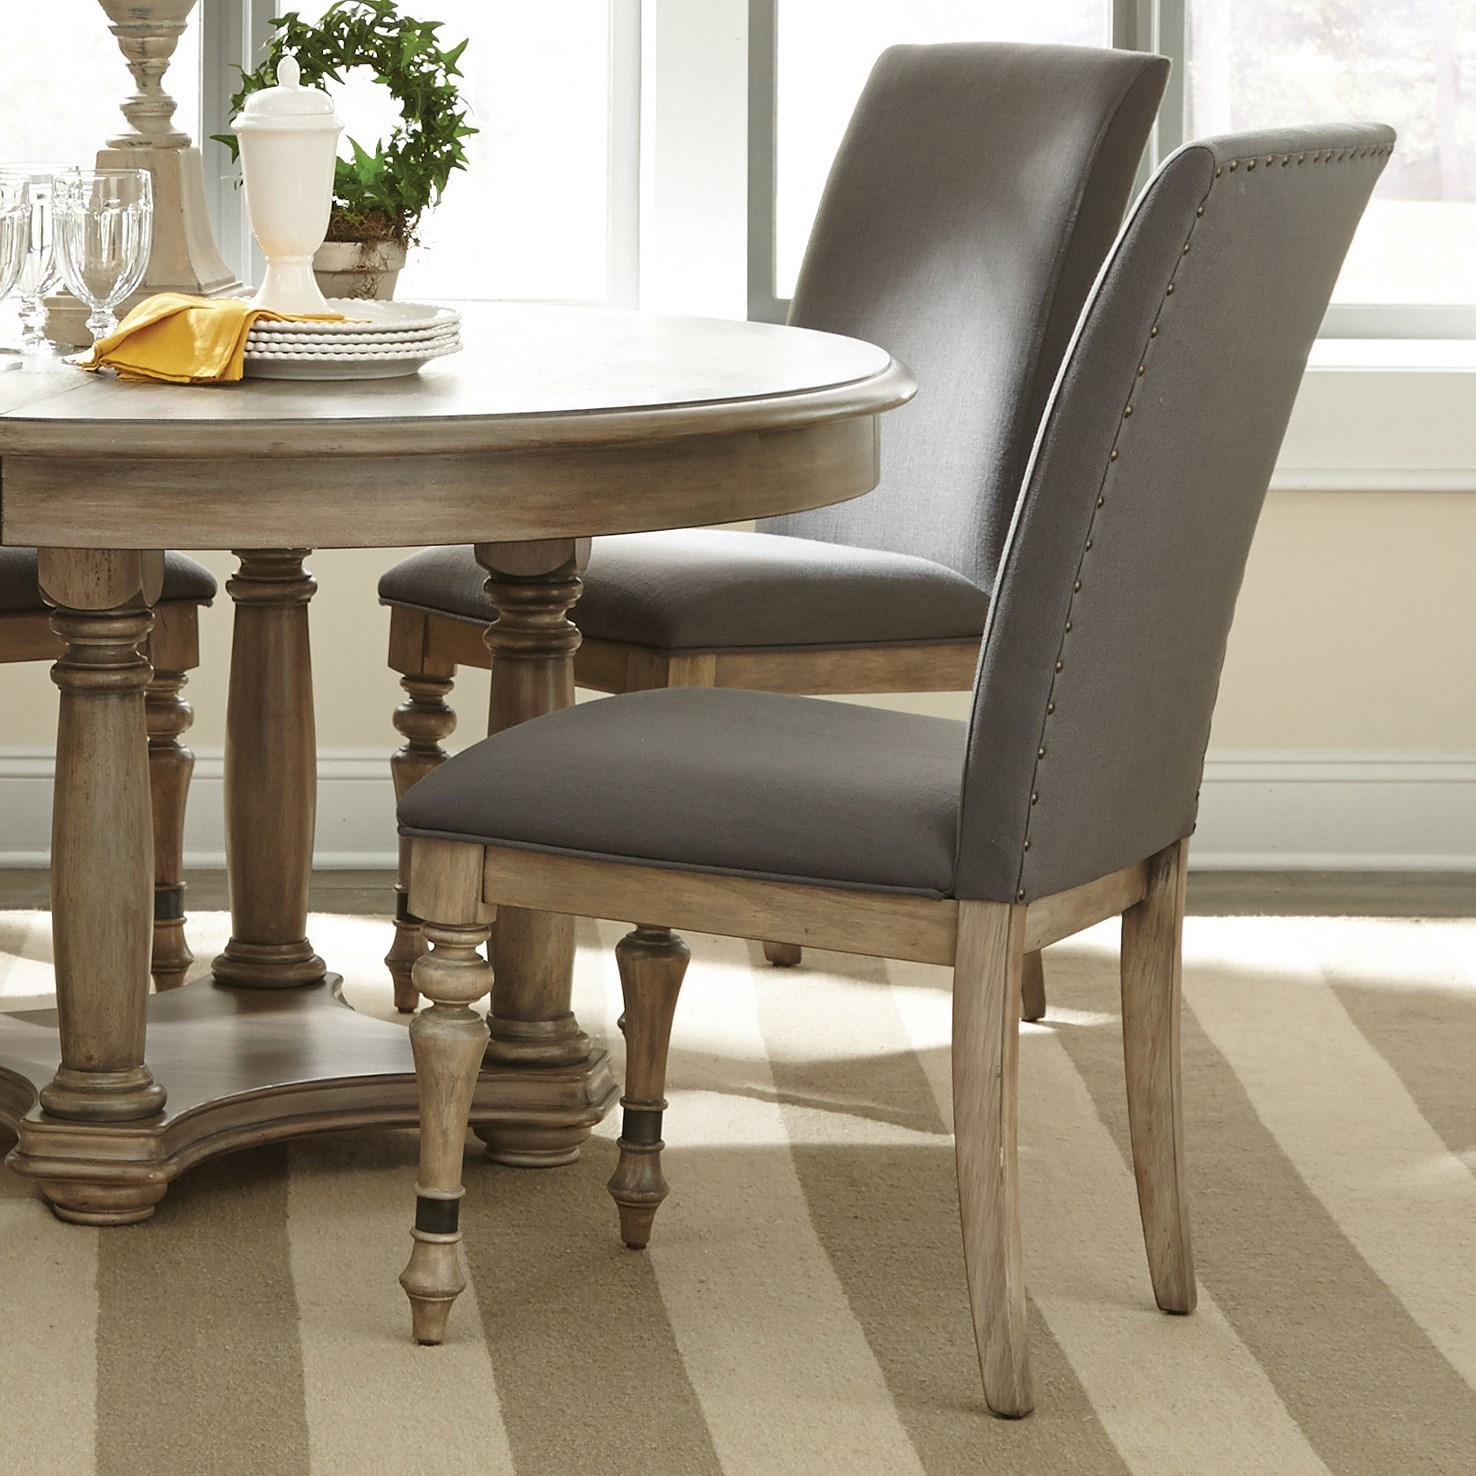 dining room chairs for less | Riverside Furniture Corinne Upholstered Side Chair with ...